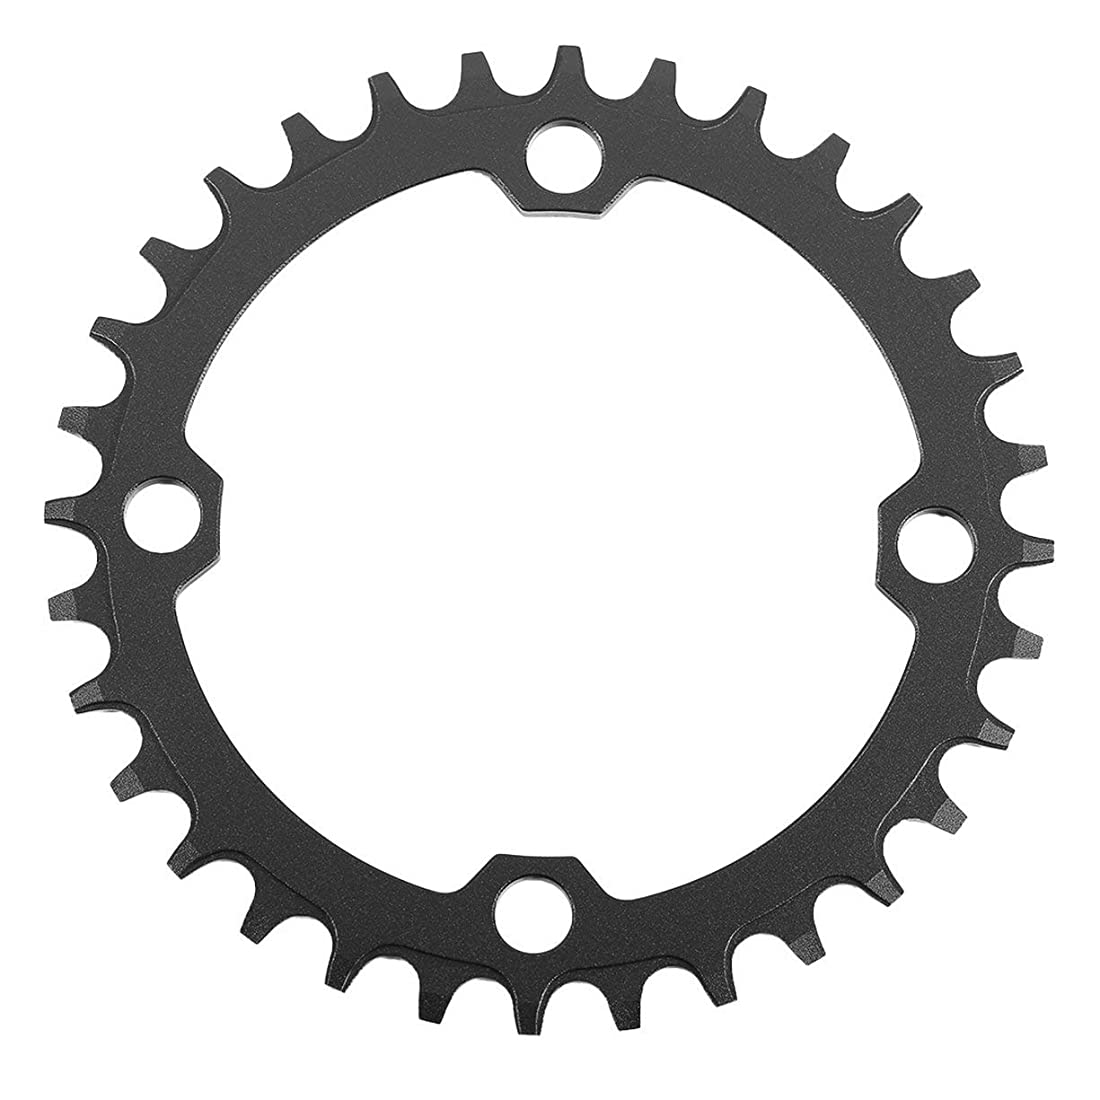 彼らはエッセンスフロントDECKAS Narrow Wide Bike MTB Crank Round Oval Chainring Chain Ring自転車Chainwheel Bike Circle Single Plate-ブラック